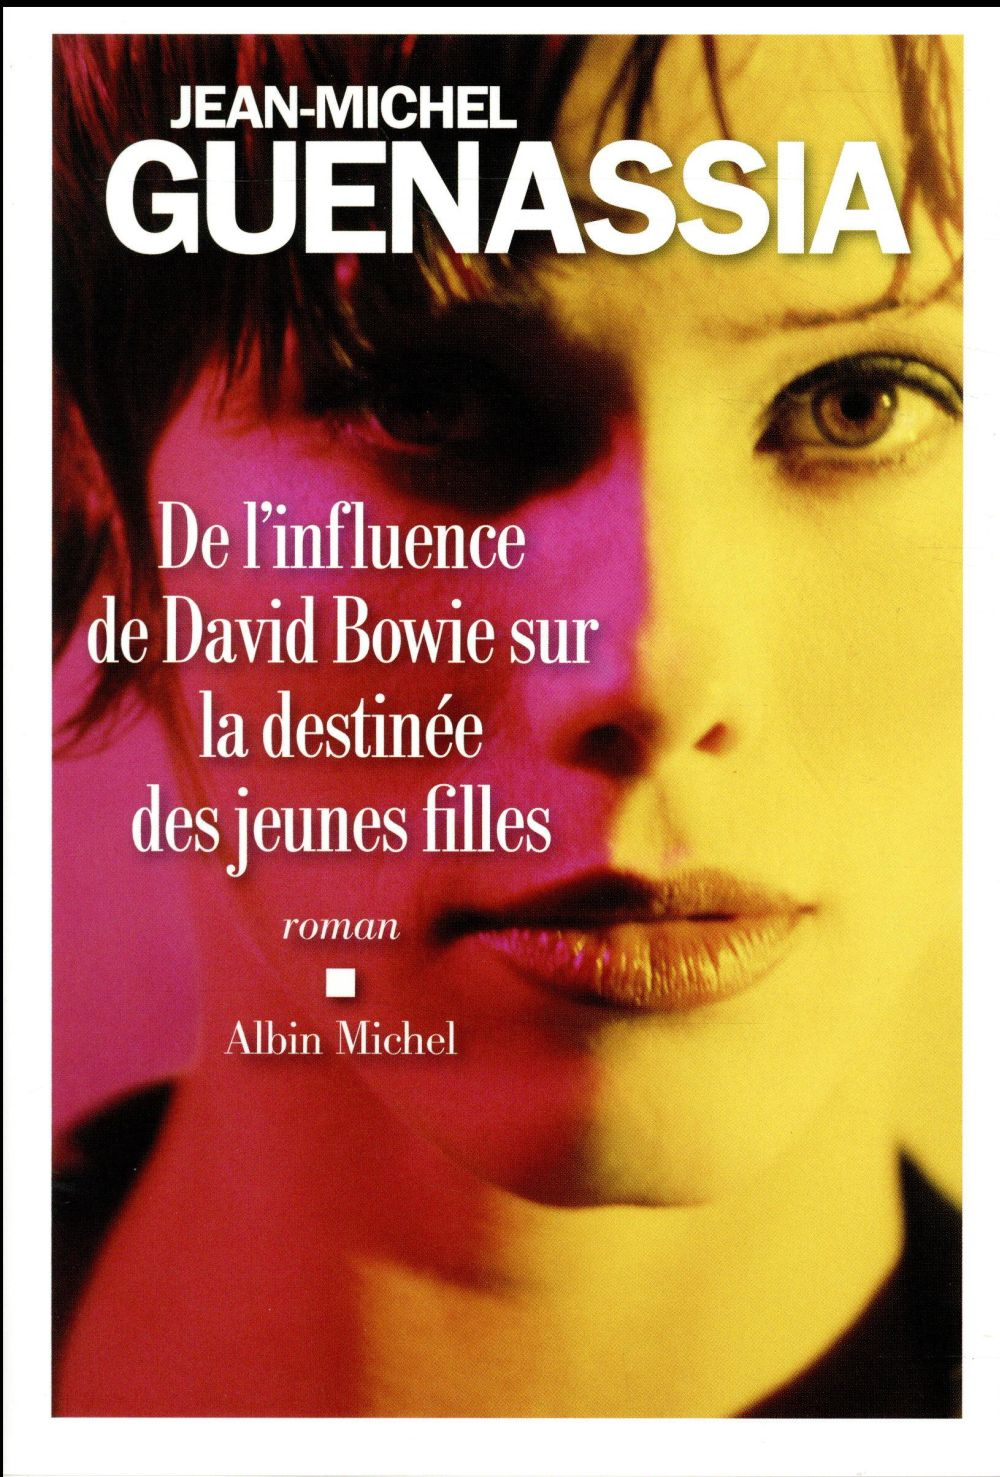 INFLUENCE DE DAVID BOWIE SUR LA DESTINEE